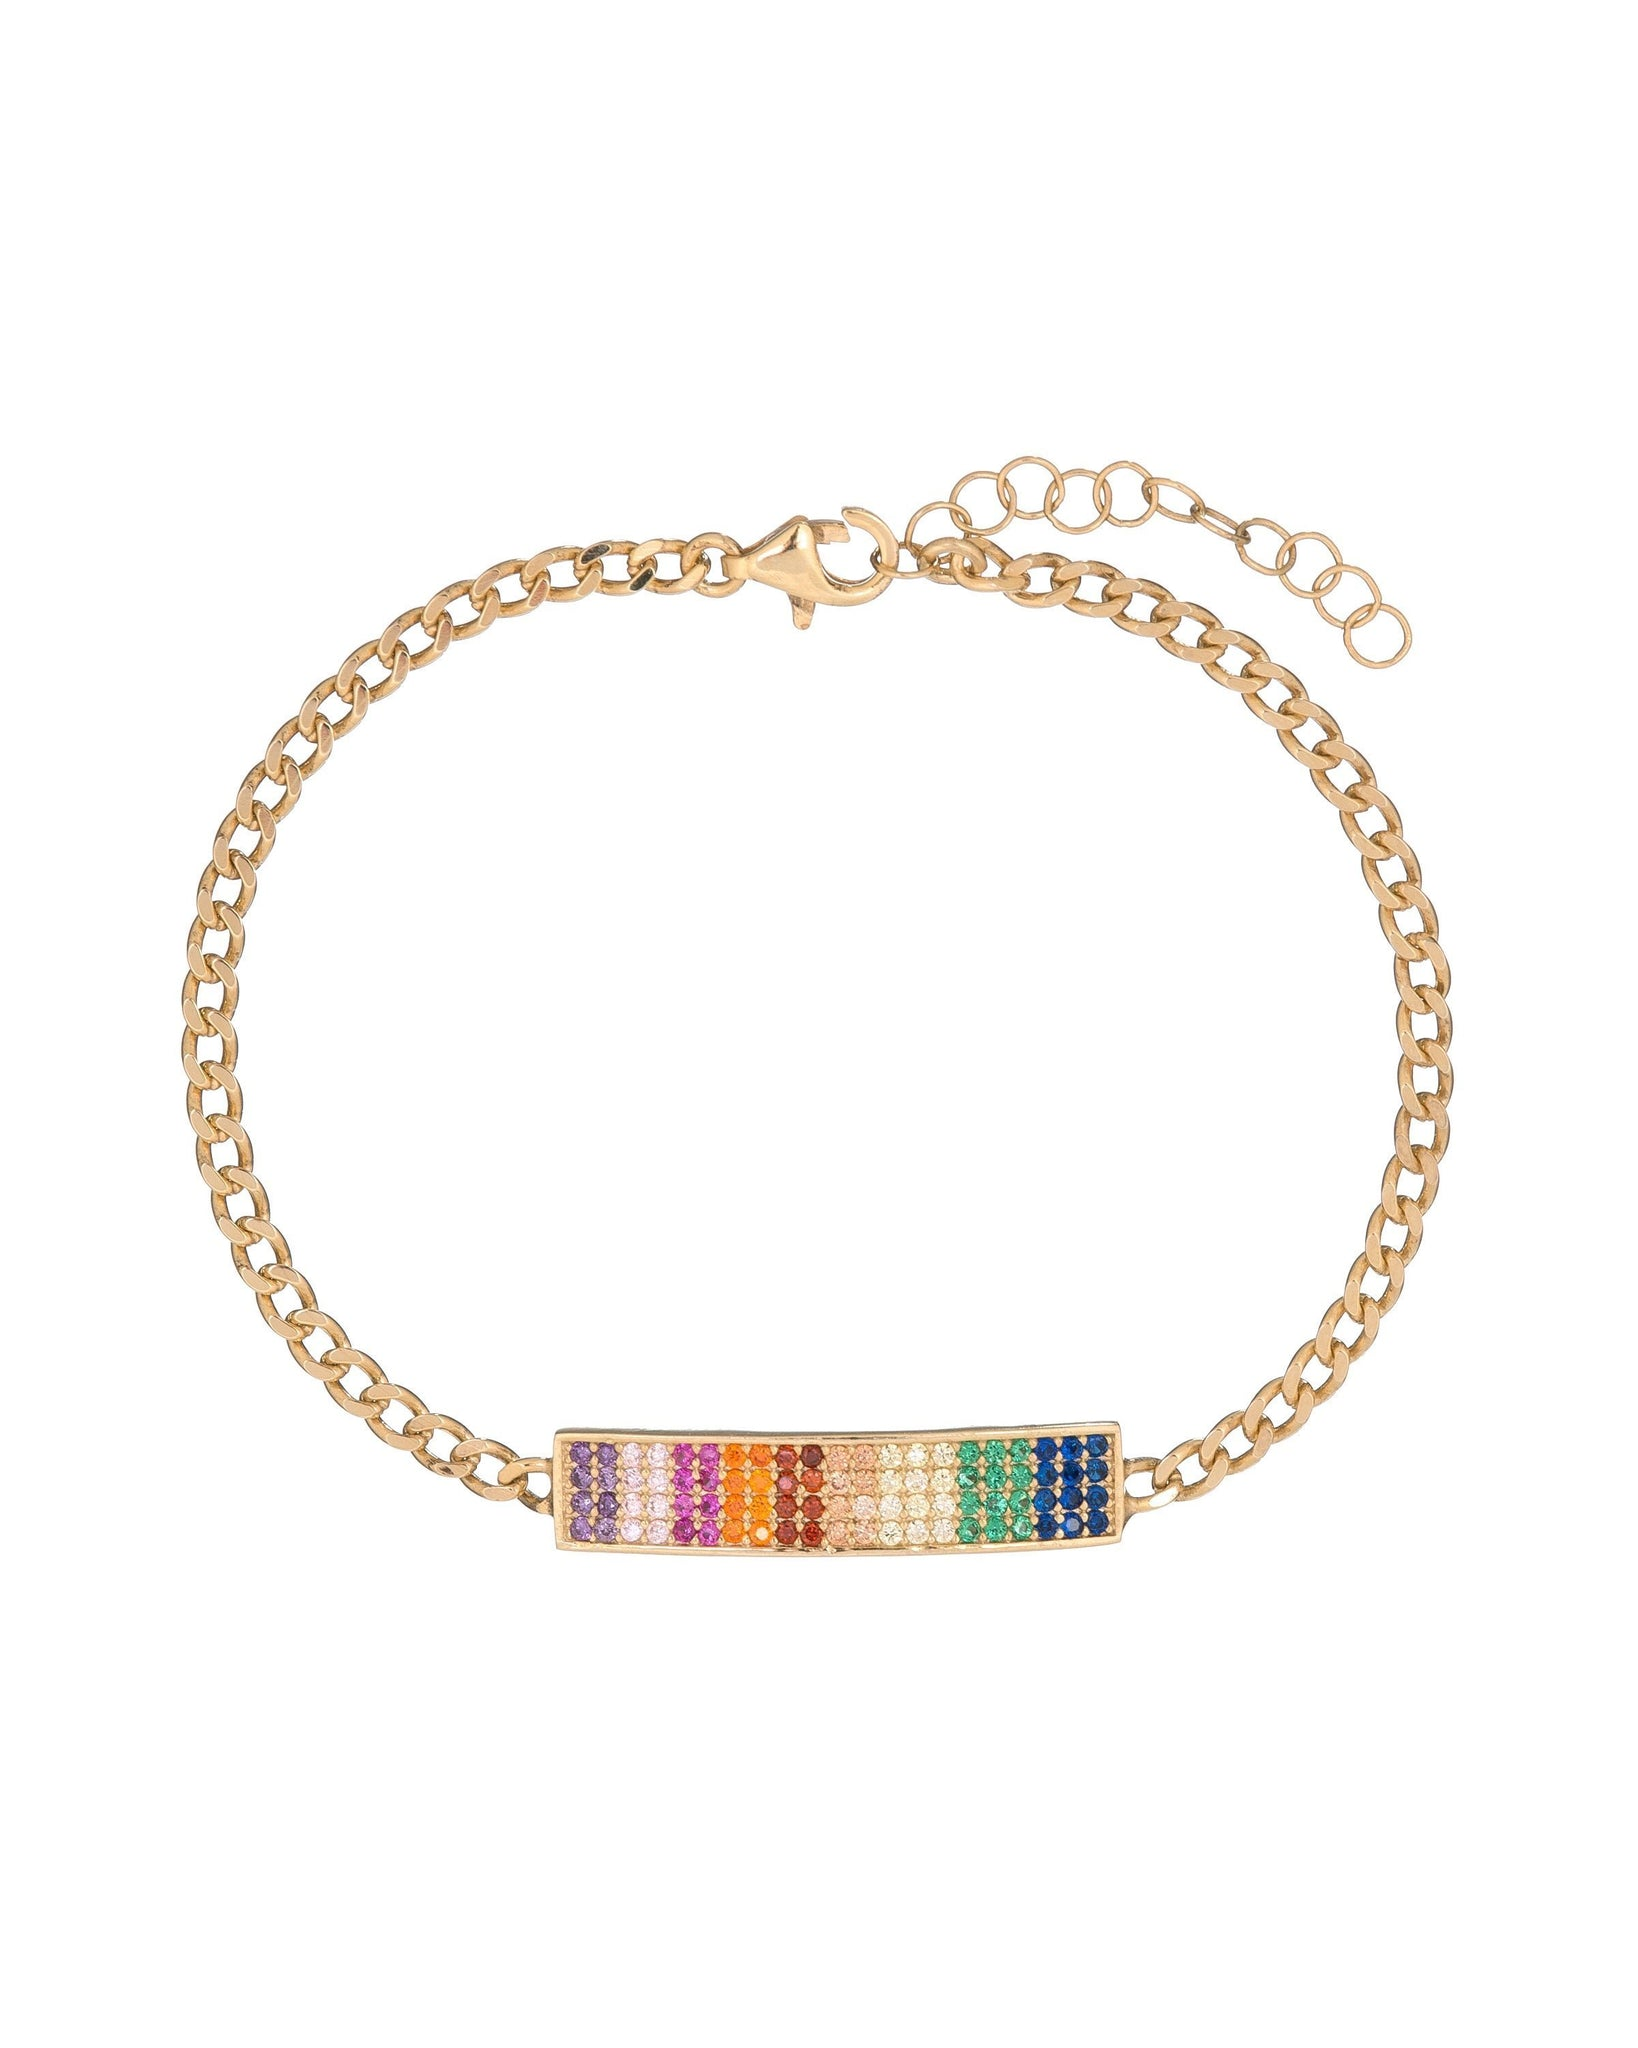 Ombre Pave Rainbow Chain Bracelet with Swarovski Crystals in 18K Gold Plated